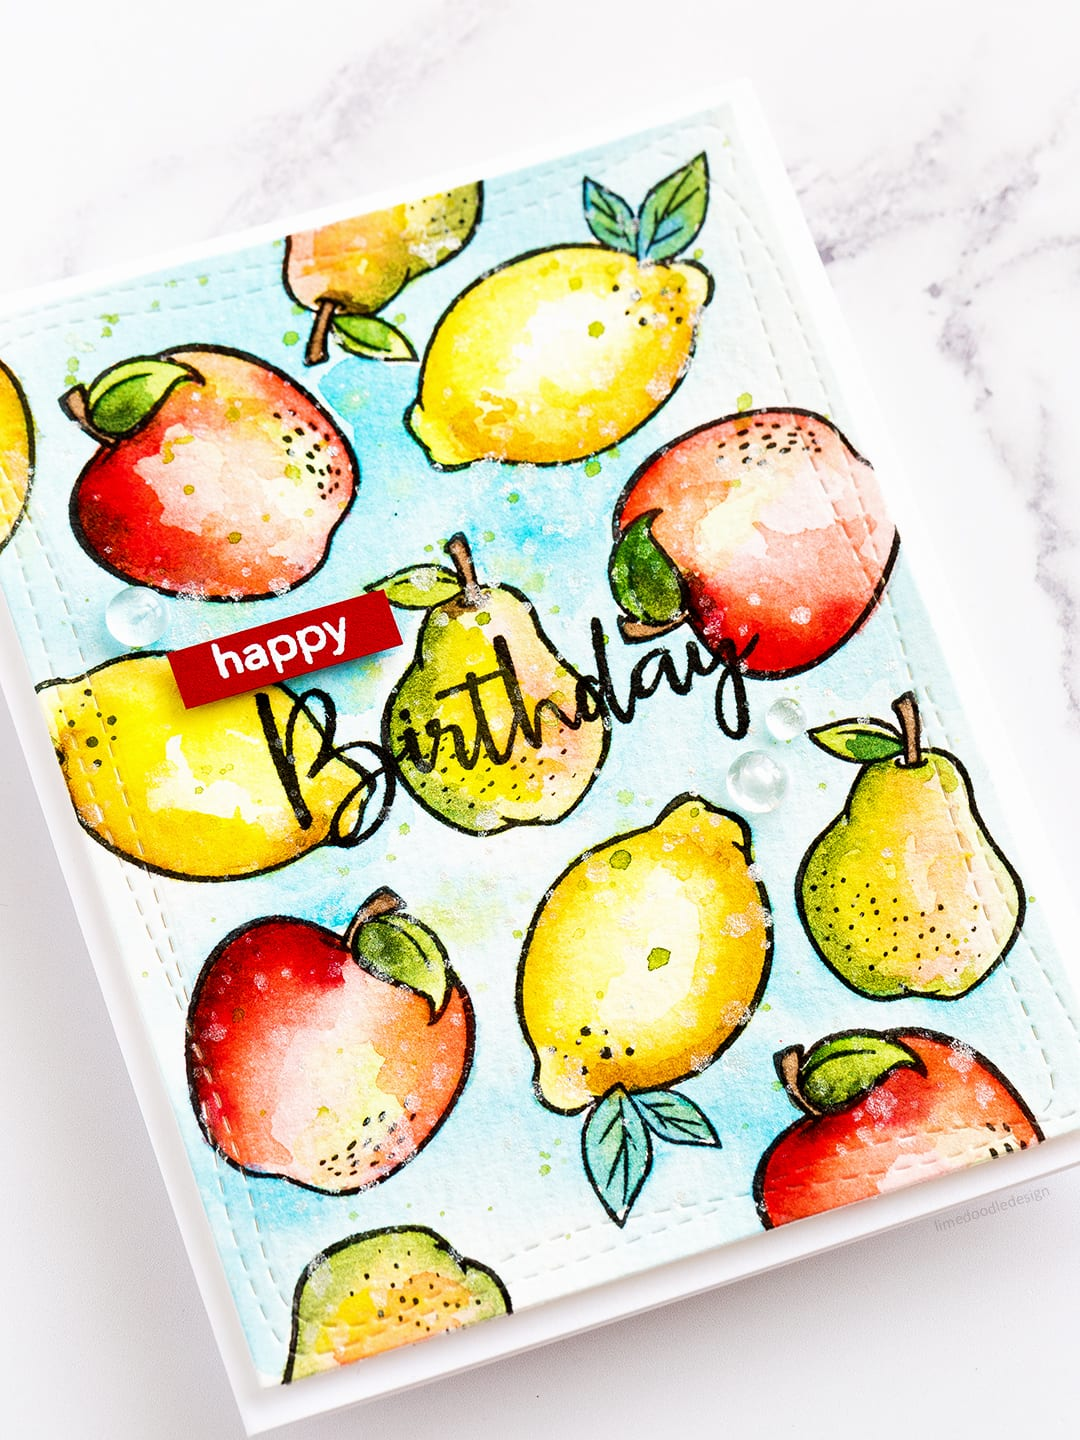 Supplies two ways with the Dancing Fruits set - part of the new release from Simon Says Stamp. Find out more about these cards by clicking on the following link: http://limedoodledesign.com/2017/06/supplies-two-ways-simon-says-stamp-new-release/